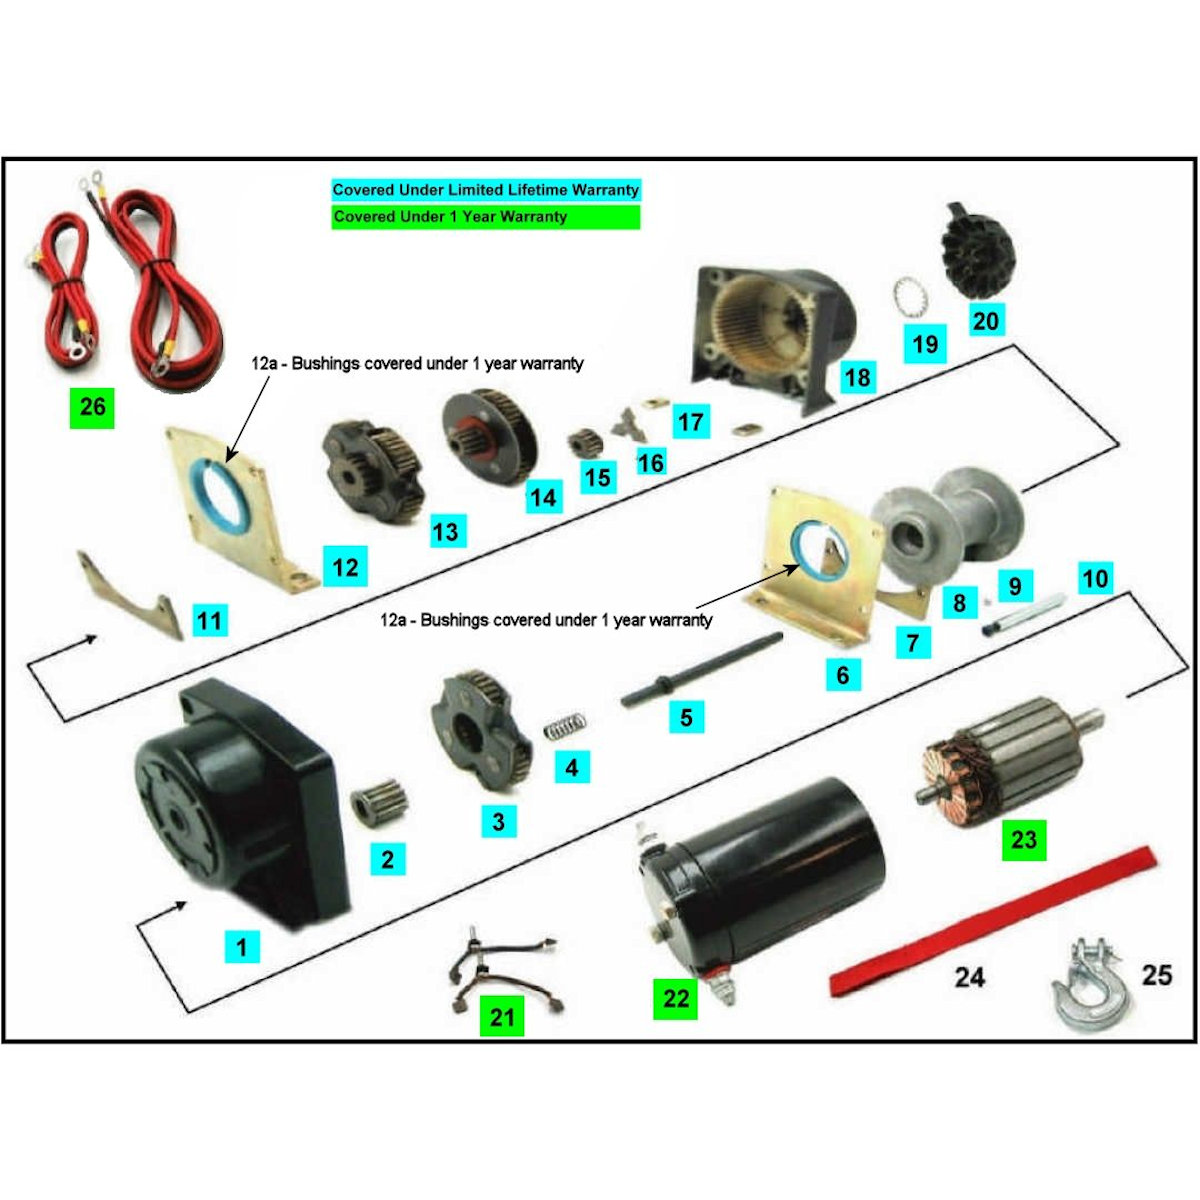 viper winches replacement parts construction winch diagram atv winch diagram [ 1200 x 1200 Pixel ]